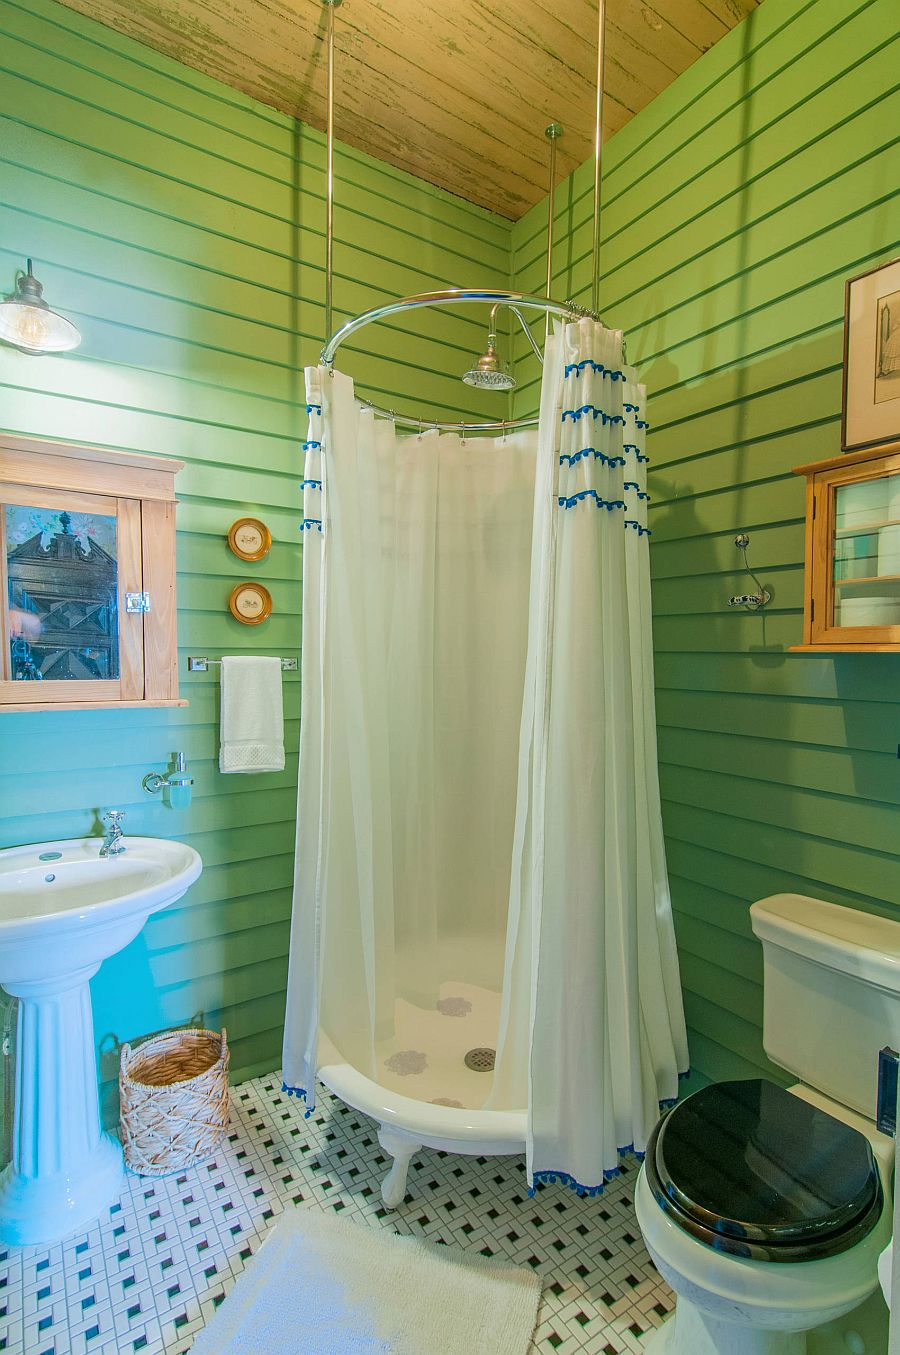 Eclectic bathroom with a fun shower zone and walls in green